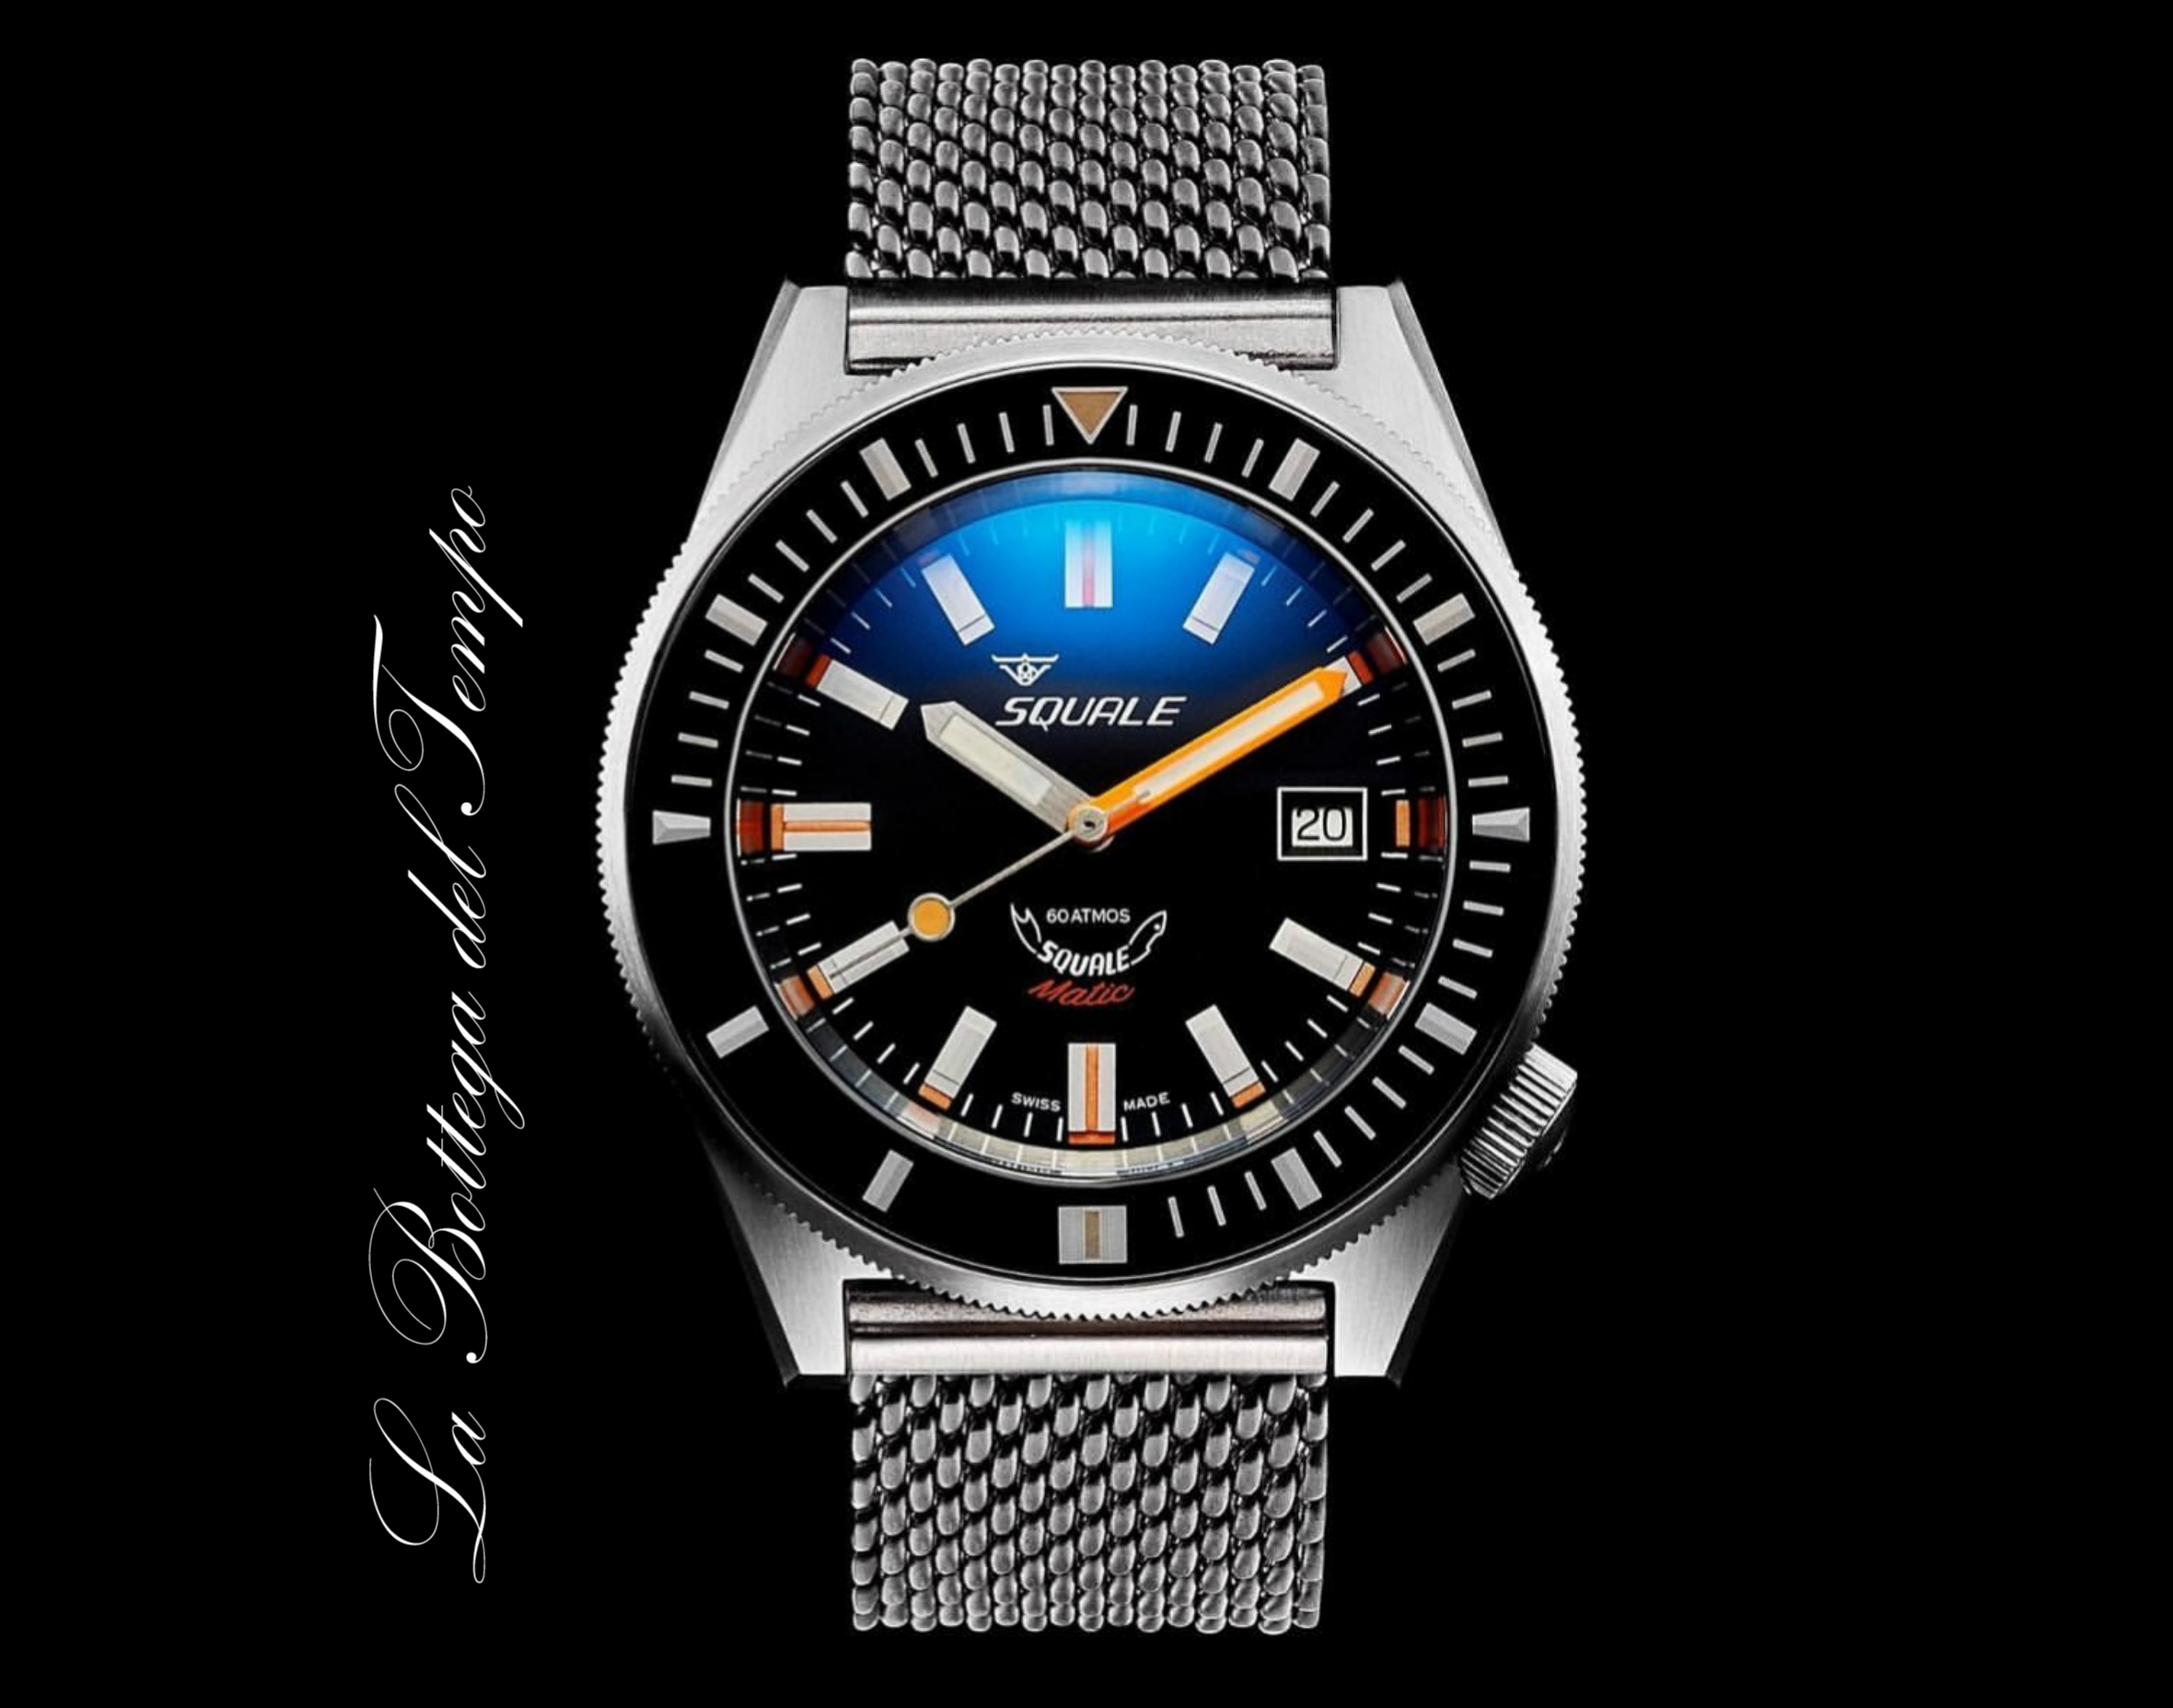 Squale Matic Brushed Steel Mesh 60ATM